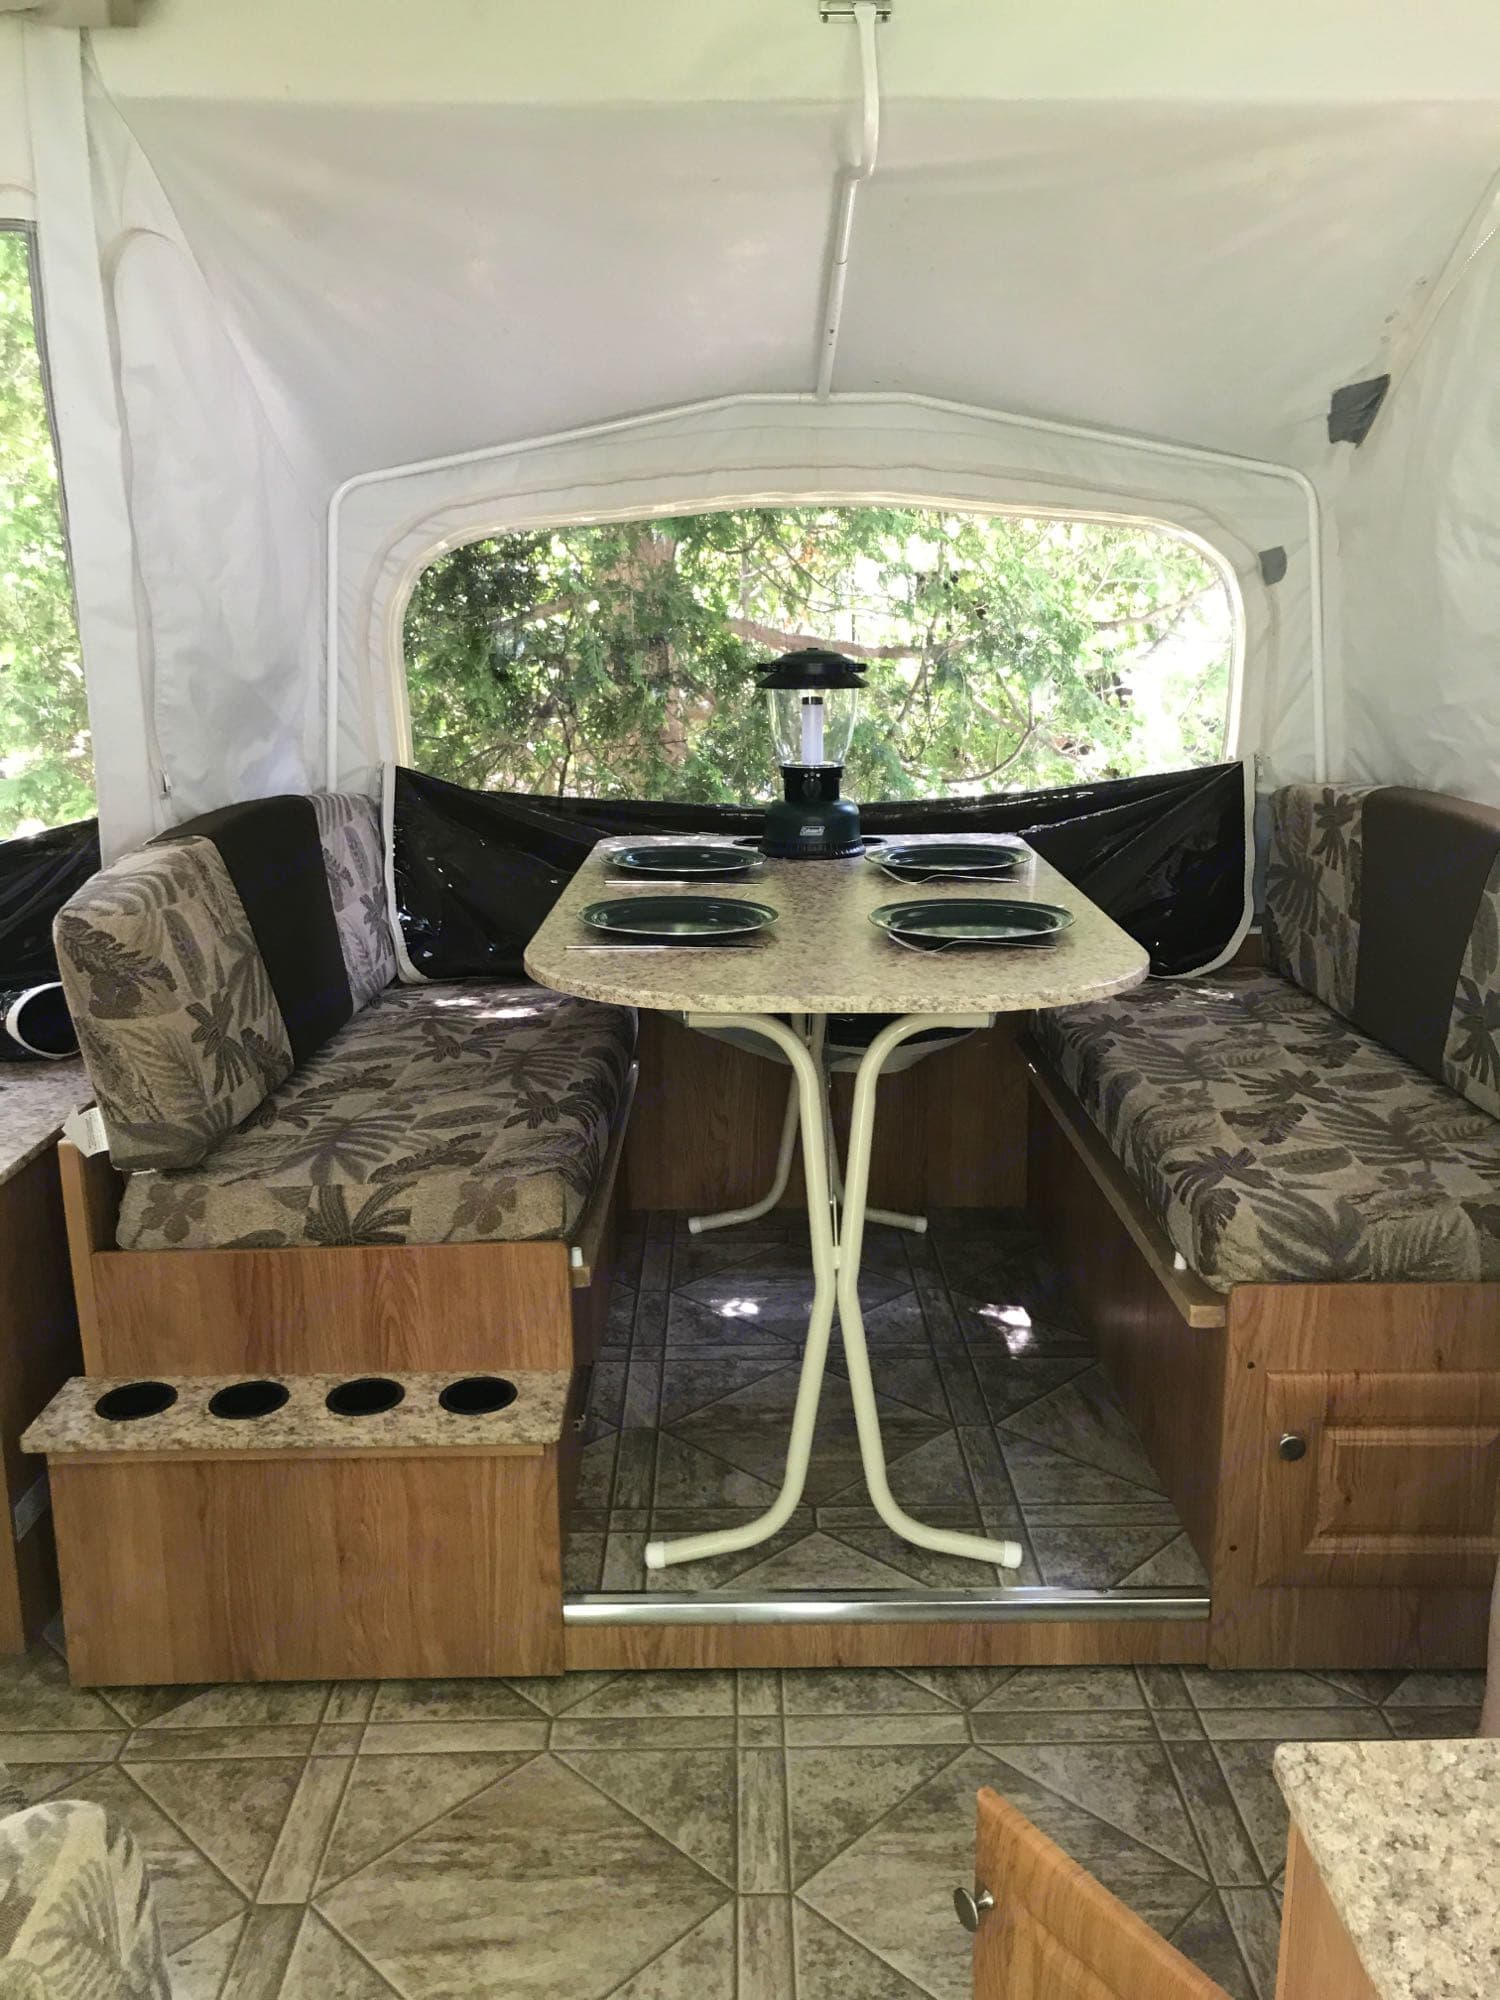 Bump Out - can be used as a table and converted to third bed at night. Jayco Jay Series 2010